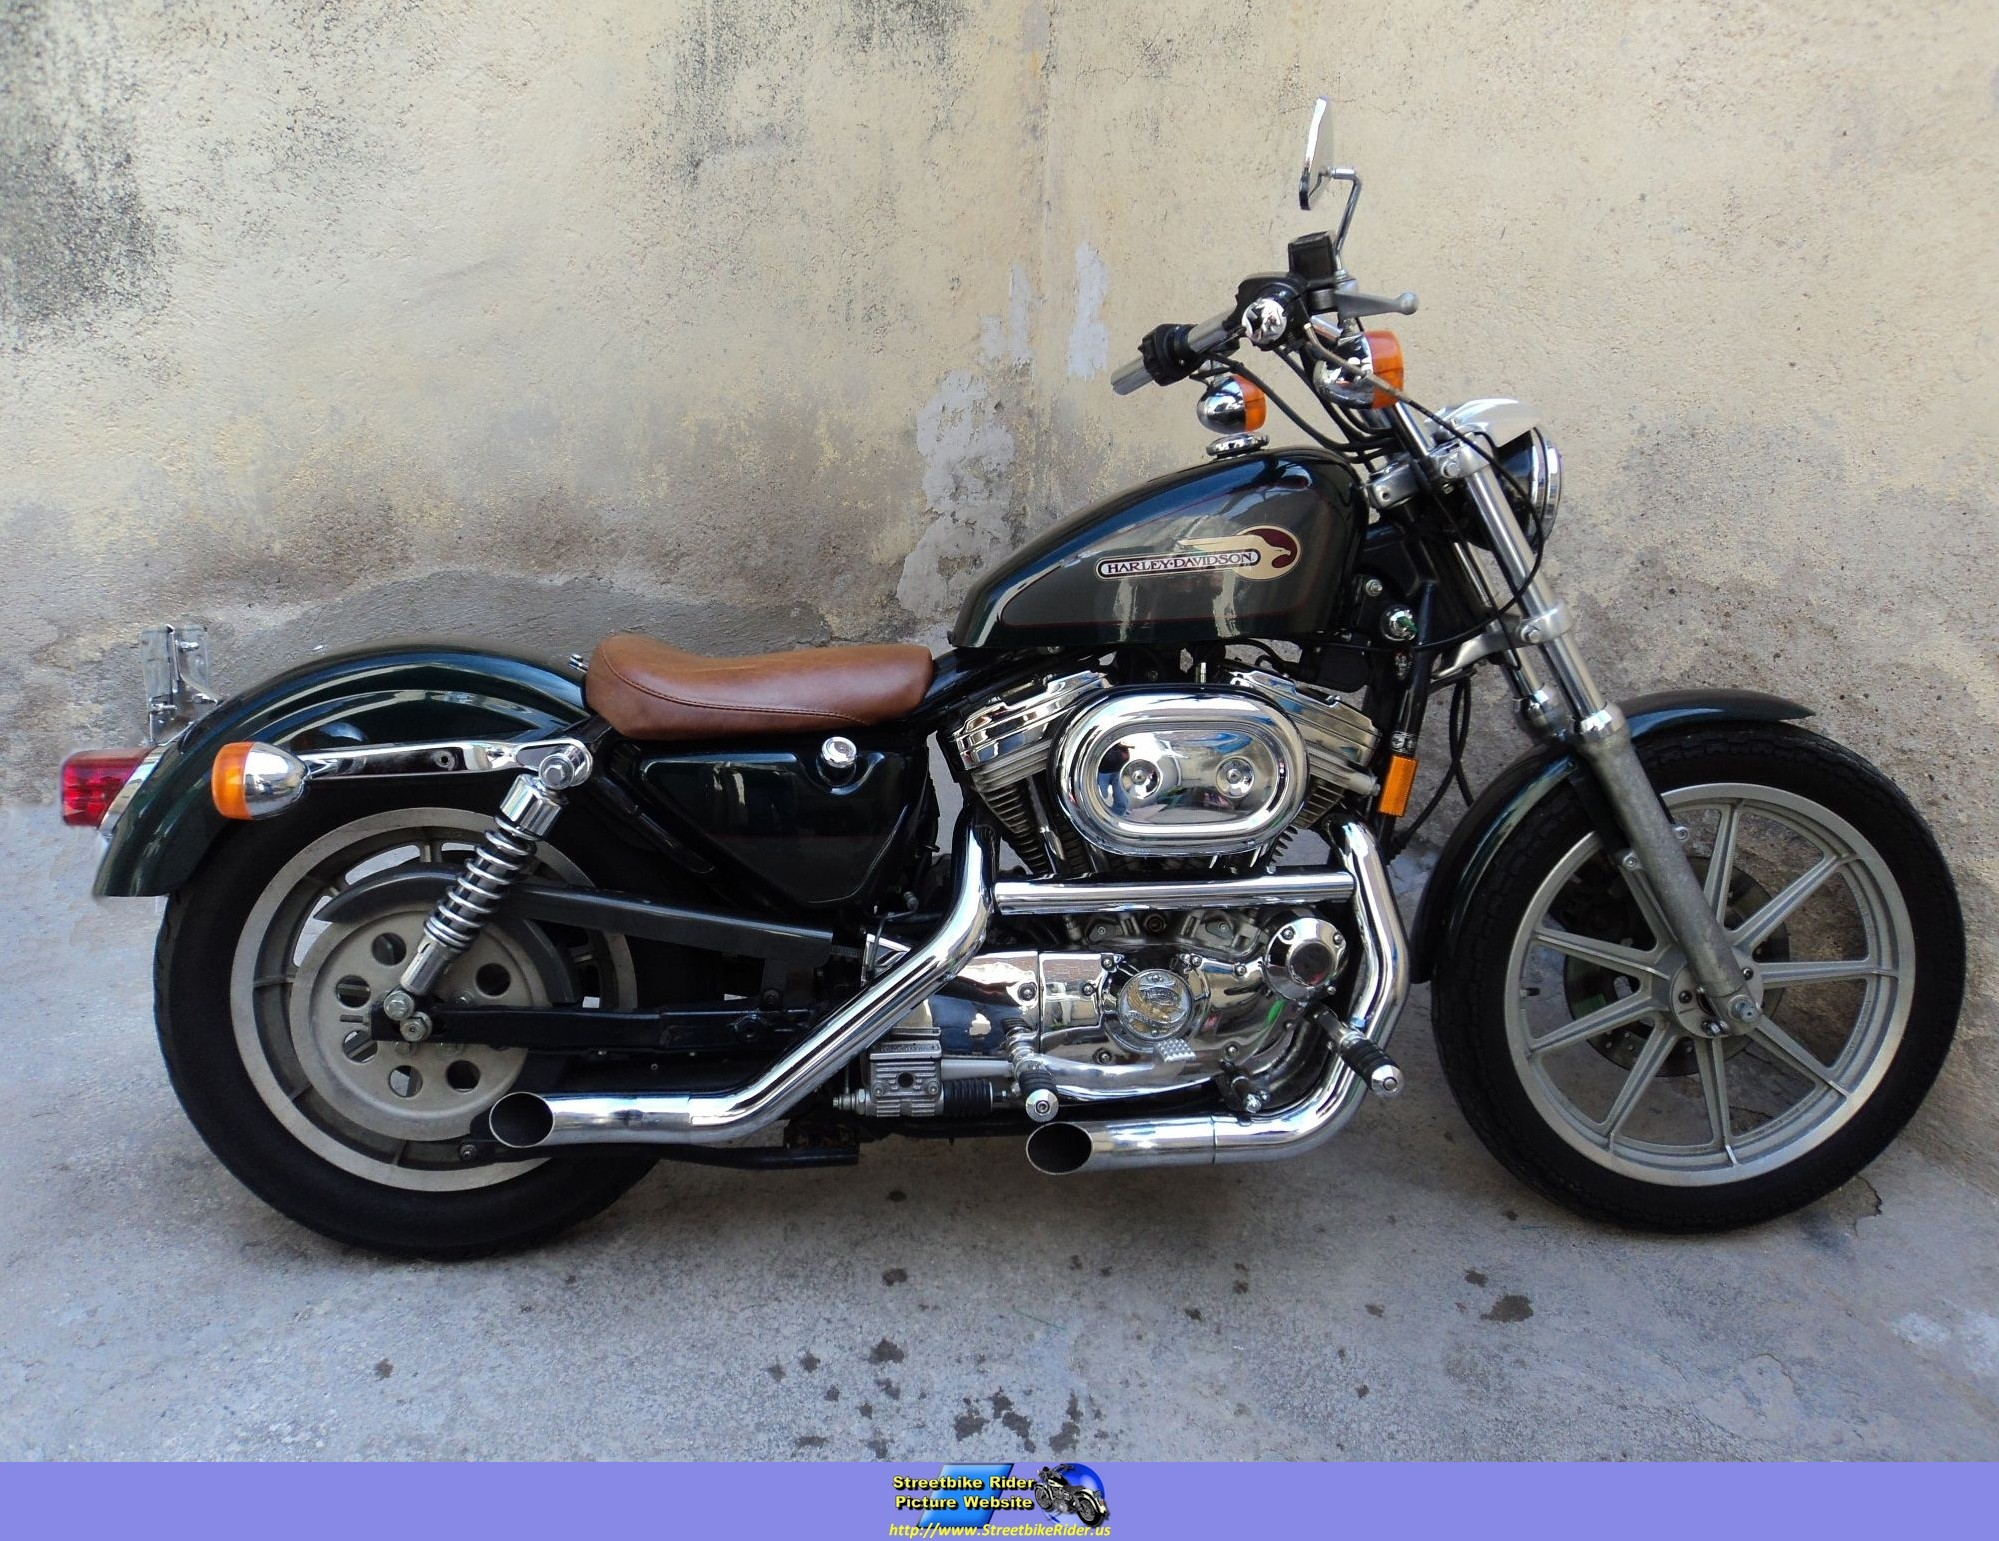 1994 harley sportster 883 wiring diagram carrier ac 1995 davidson xlh pics specs and